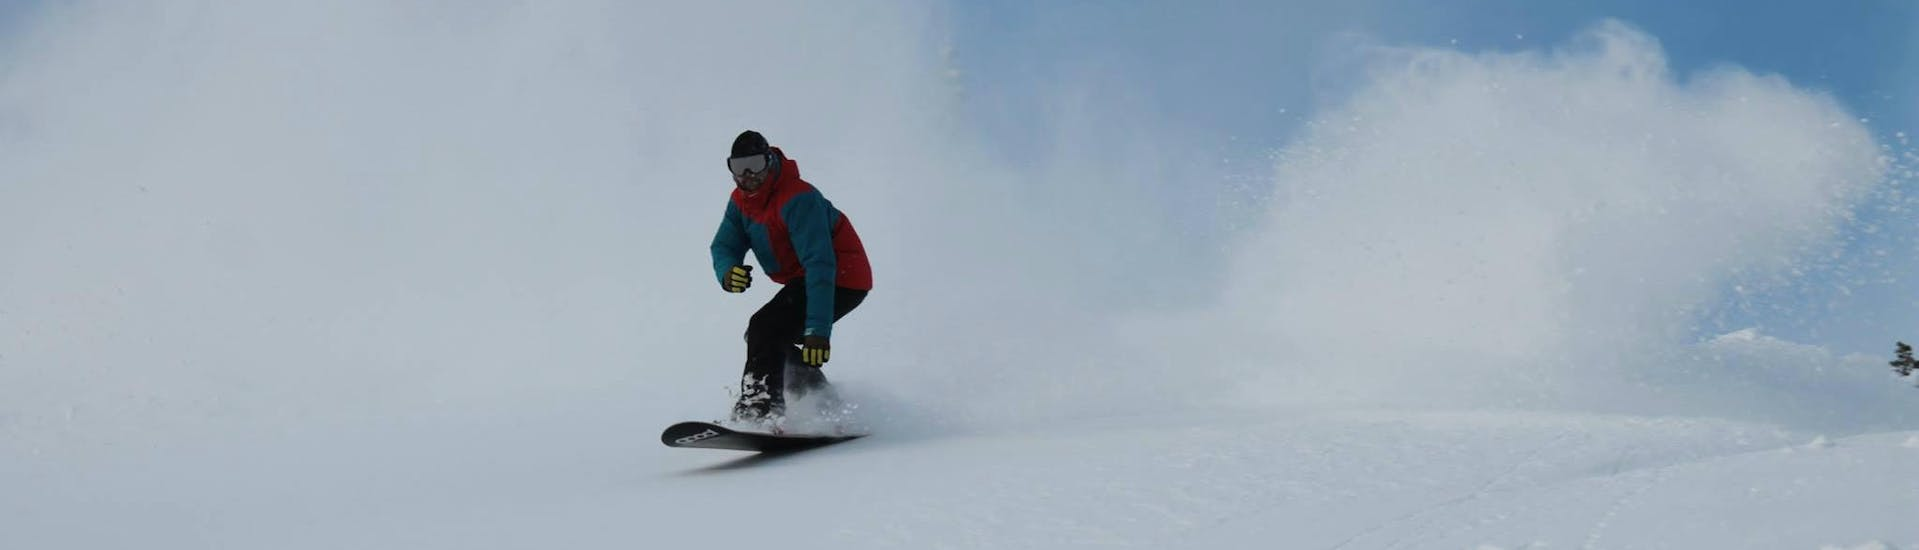 Snowboarding Lessons for Advanced Boarders with Equipment with BoardStars Snowboardschule Schladming - Hero image